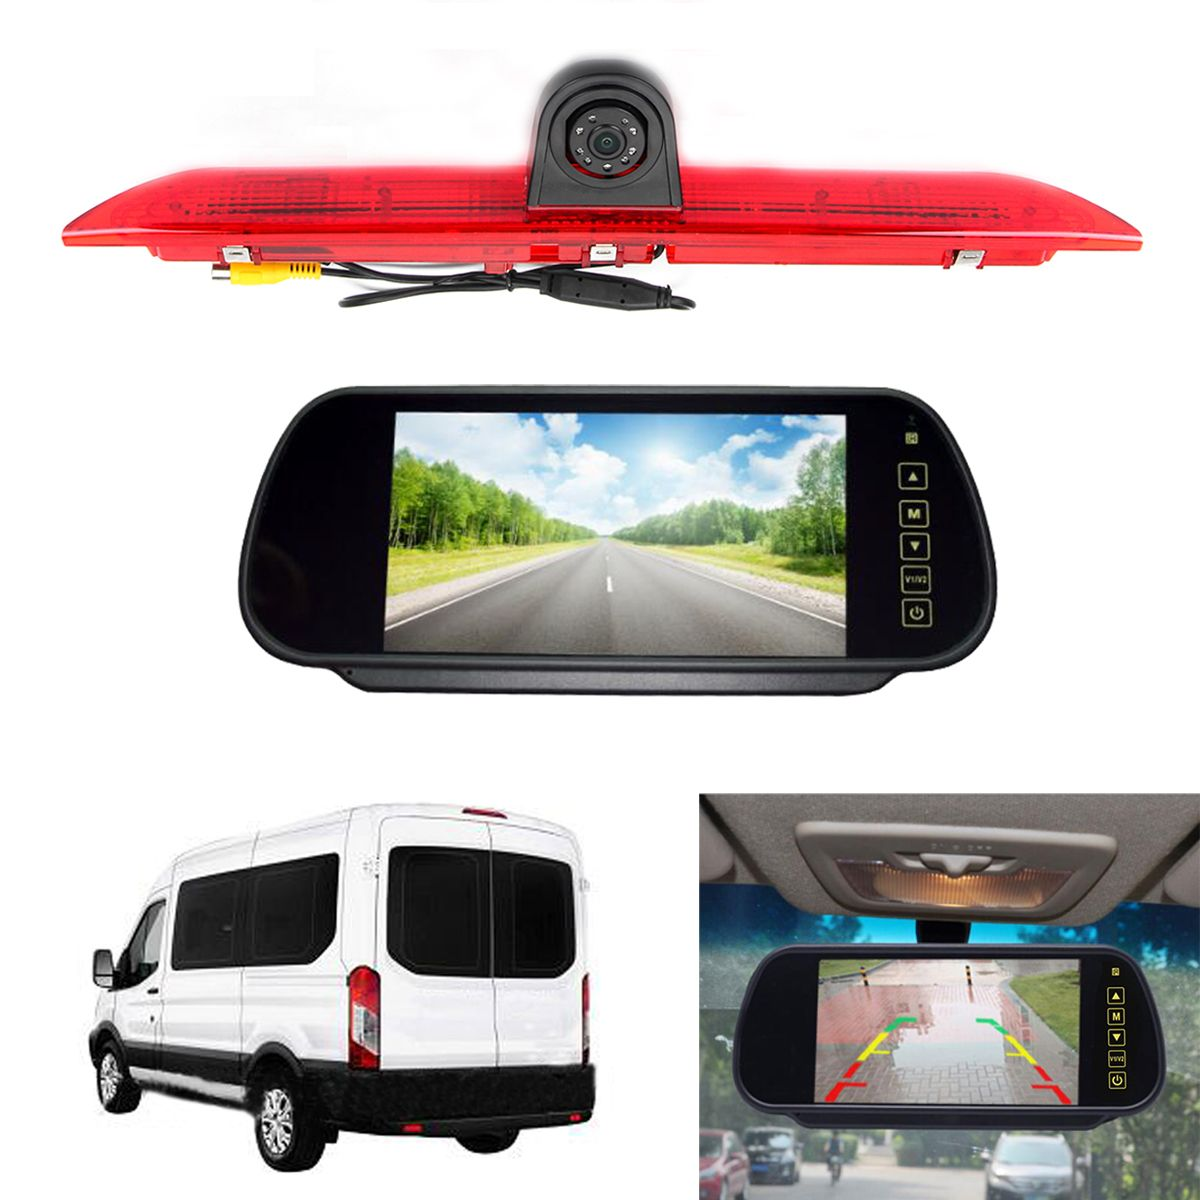 KROAK LED Brake Light IR LED Brake Light Rear View Reversing Parking Camera & 7 Inch Monitor Kit for FORD Transit 2014